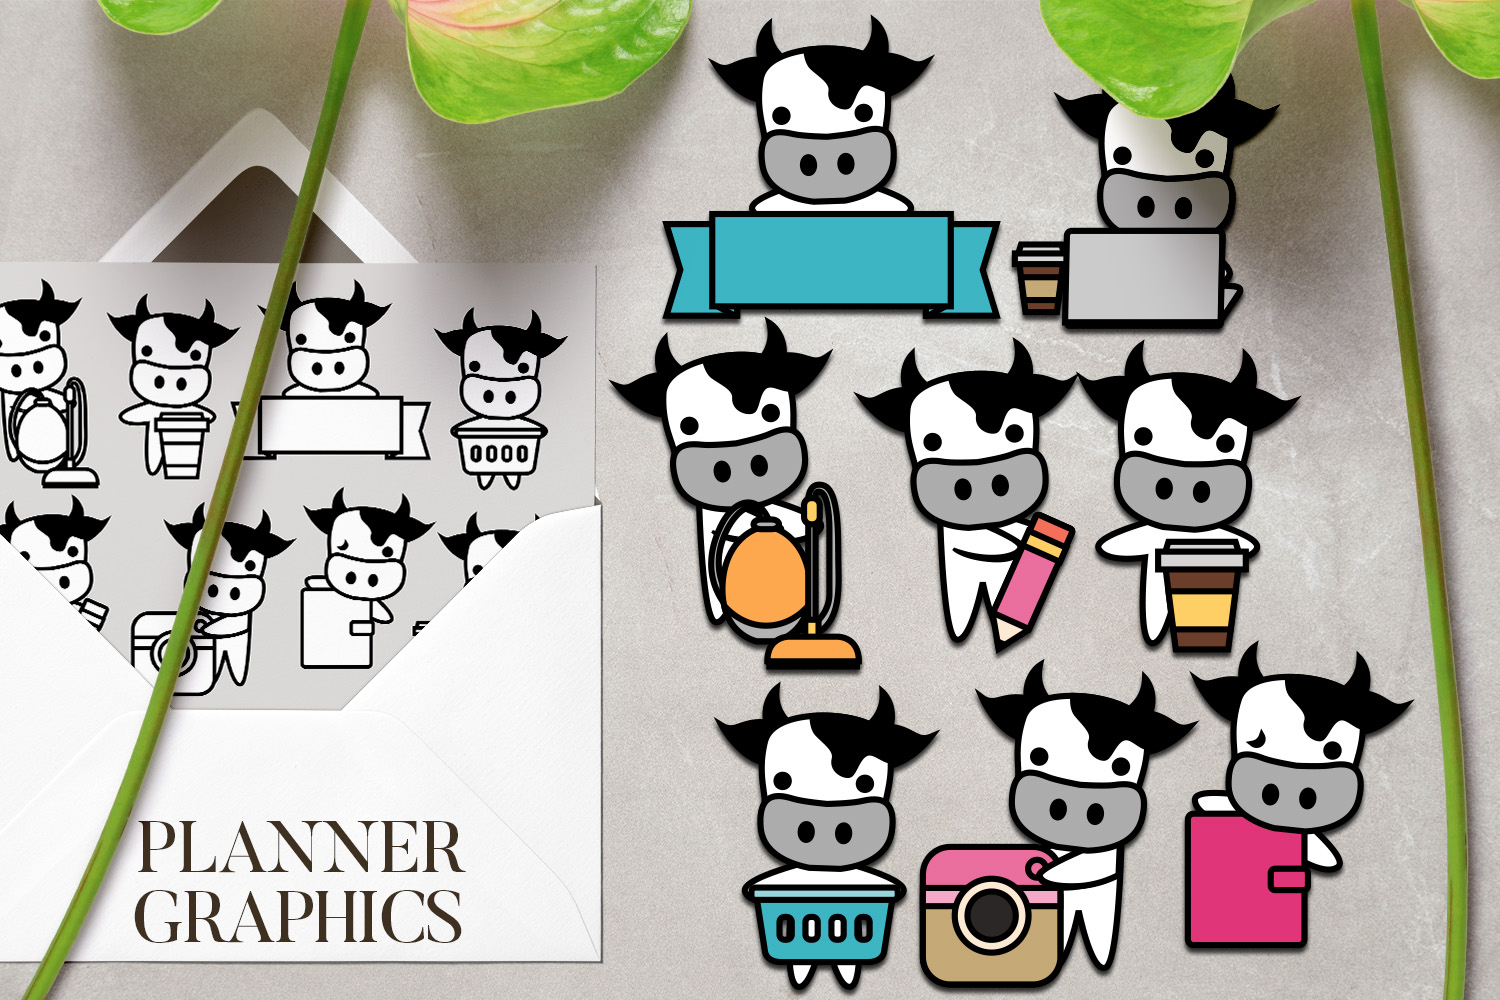 Chores Bundle - Animals characters clip art illustrations example image 7